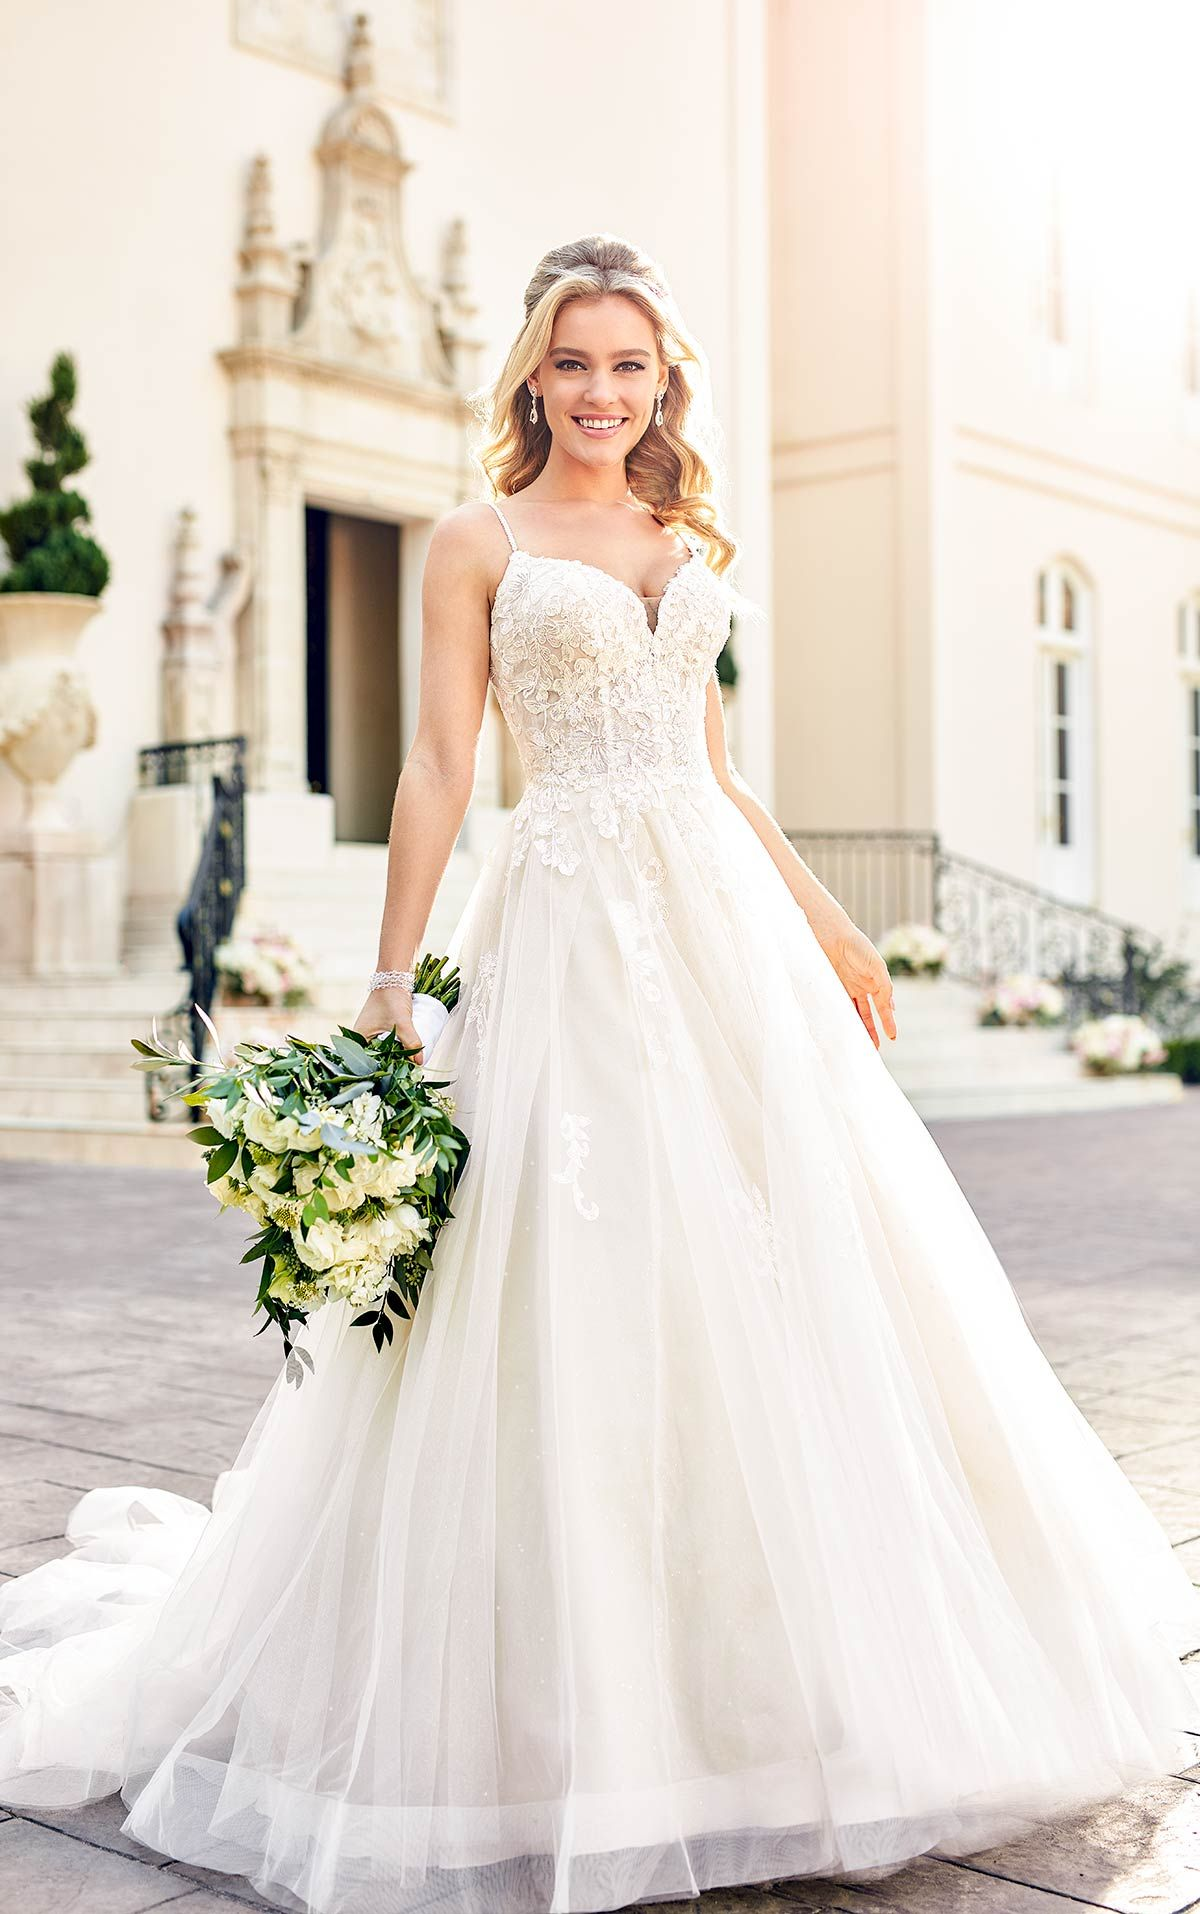 Sparkly Ballgown With Glitter Tulle Stella York Wedding Dresses In 2020 Ball Gowns Wedding Ball Gown Wedding Dress Wedding Dress Prices